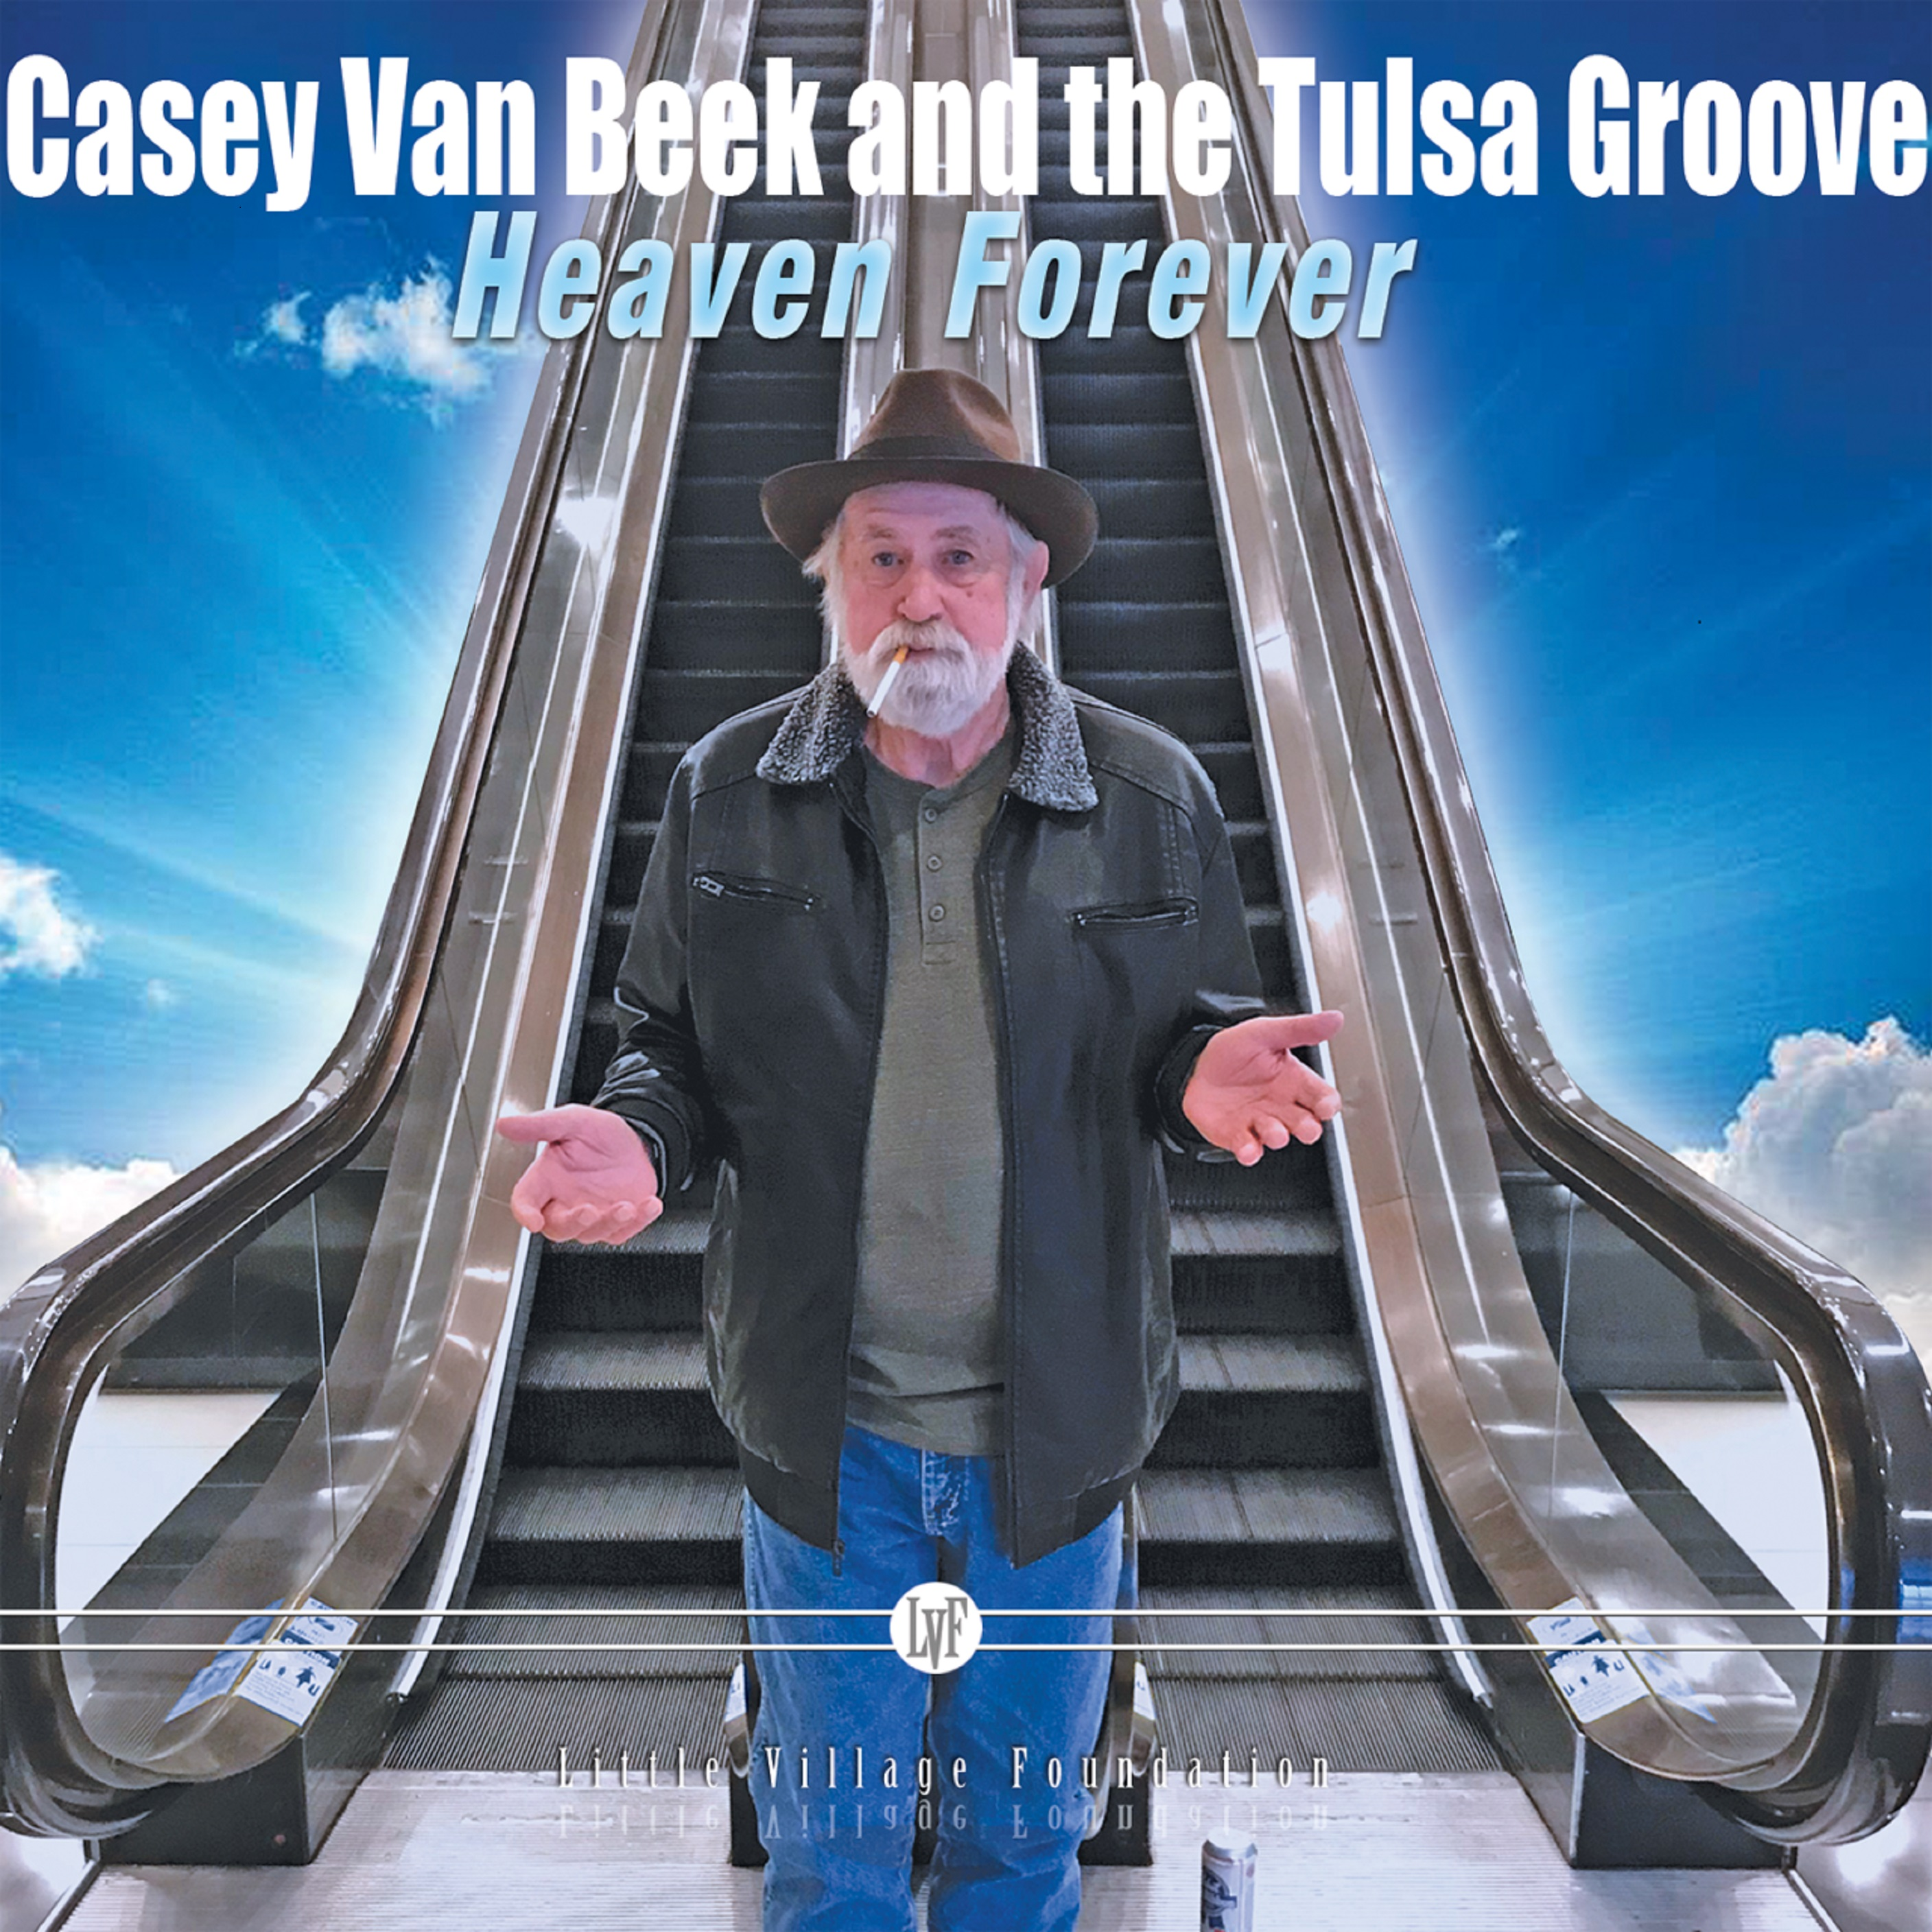 Casey Van Beek and the Tulsa Groove just released Heaven Forever